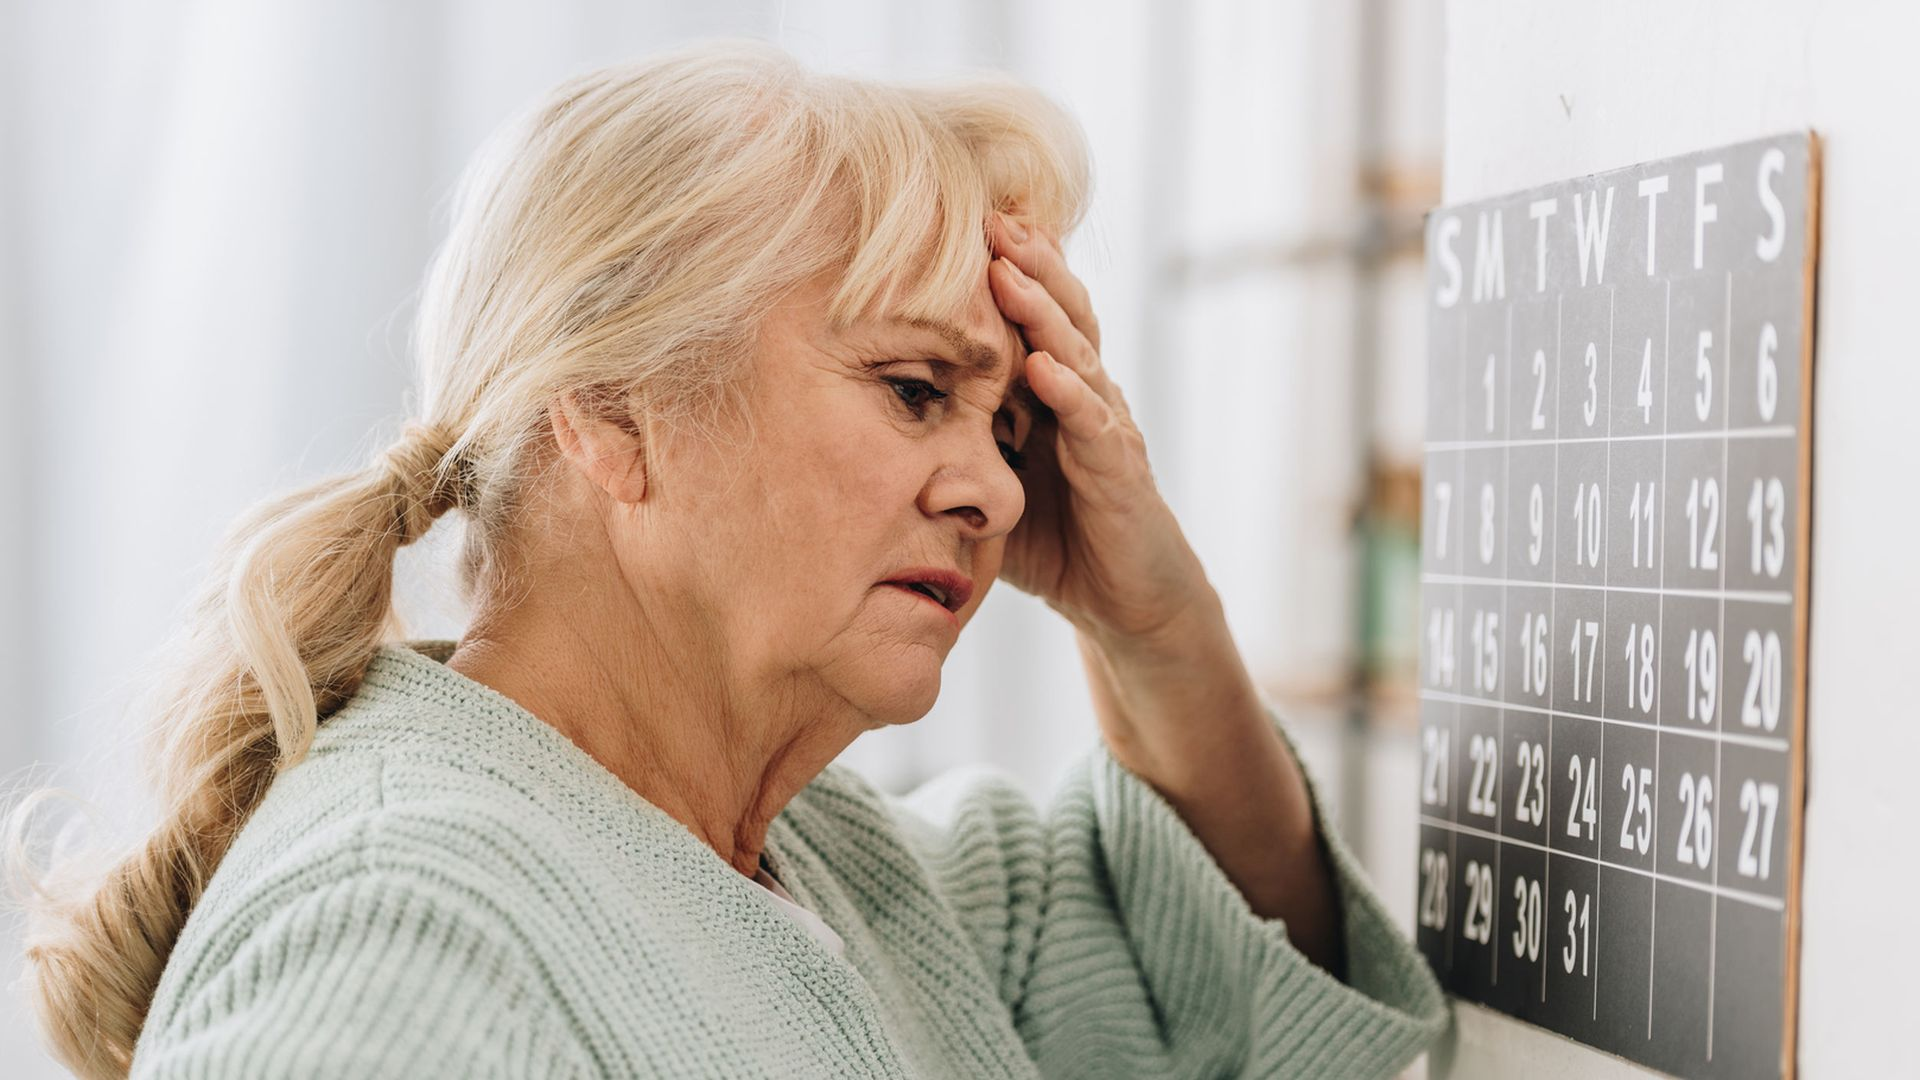 High Blood Pressure Increases Risk Of Developing Dementia